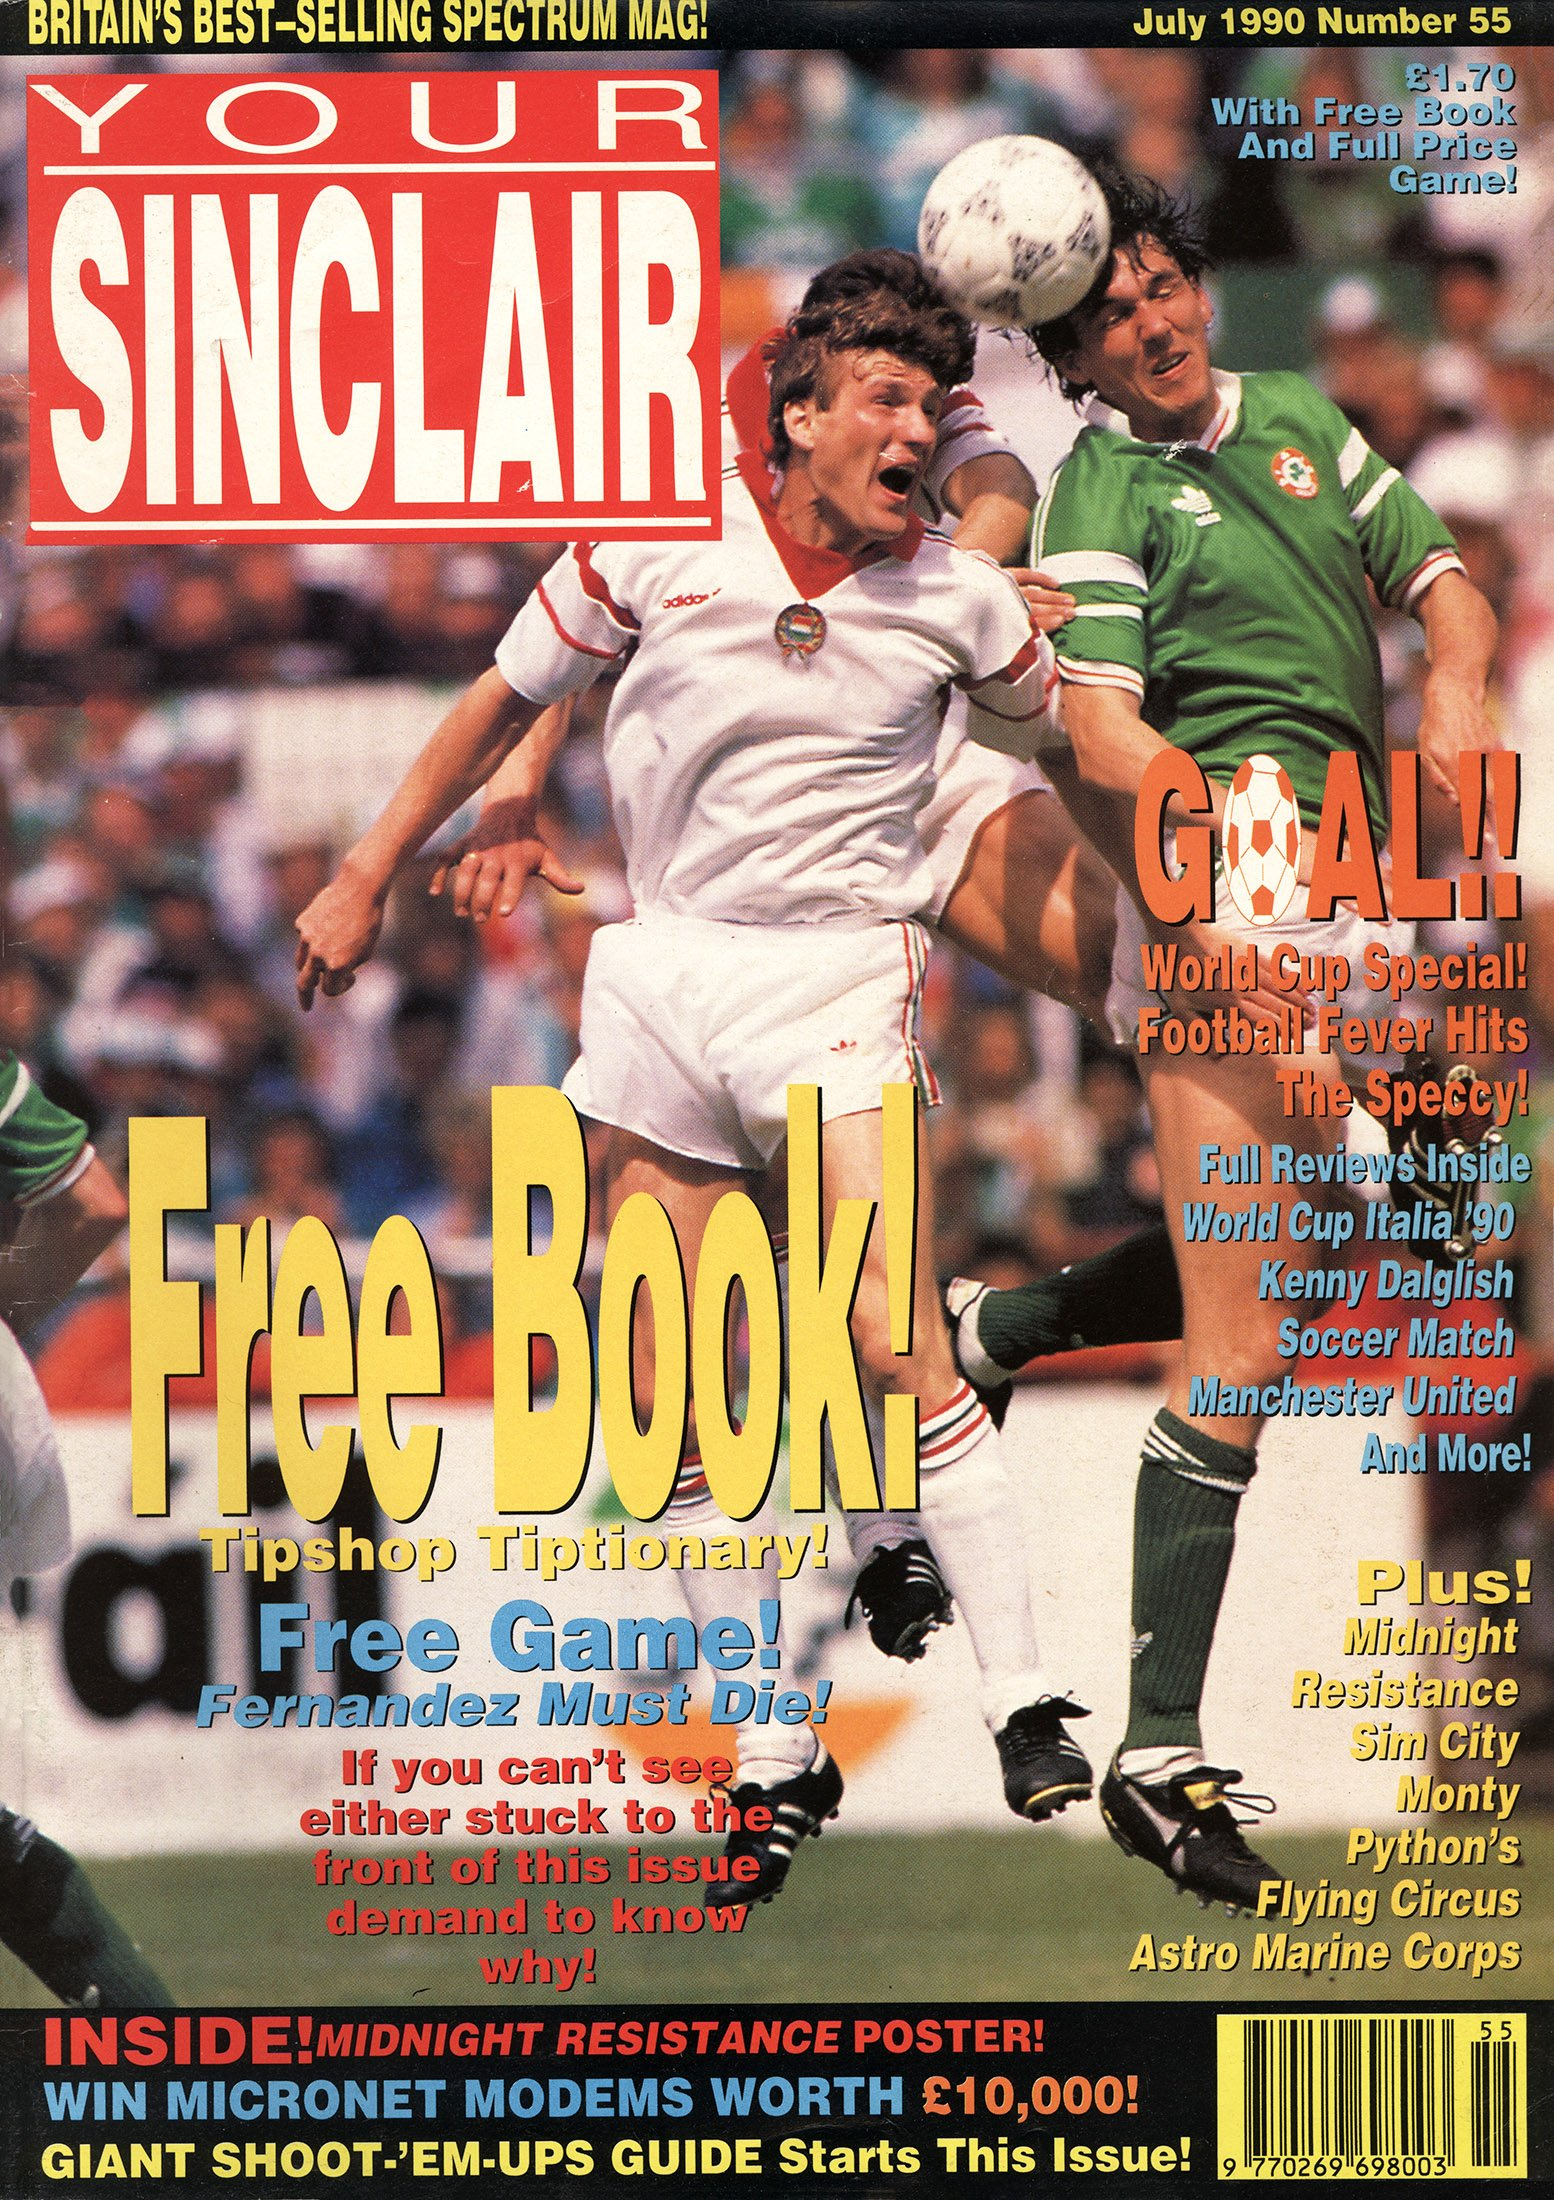 Your Sinclair Issue 55 (July 1990)